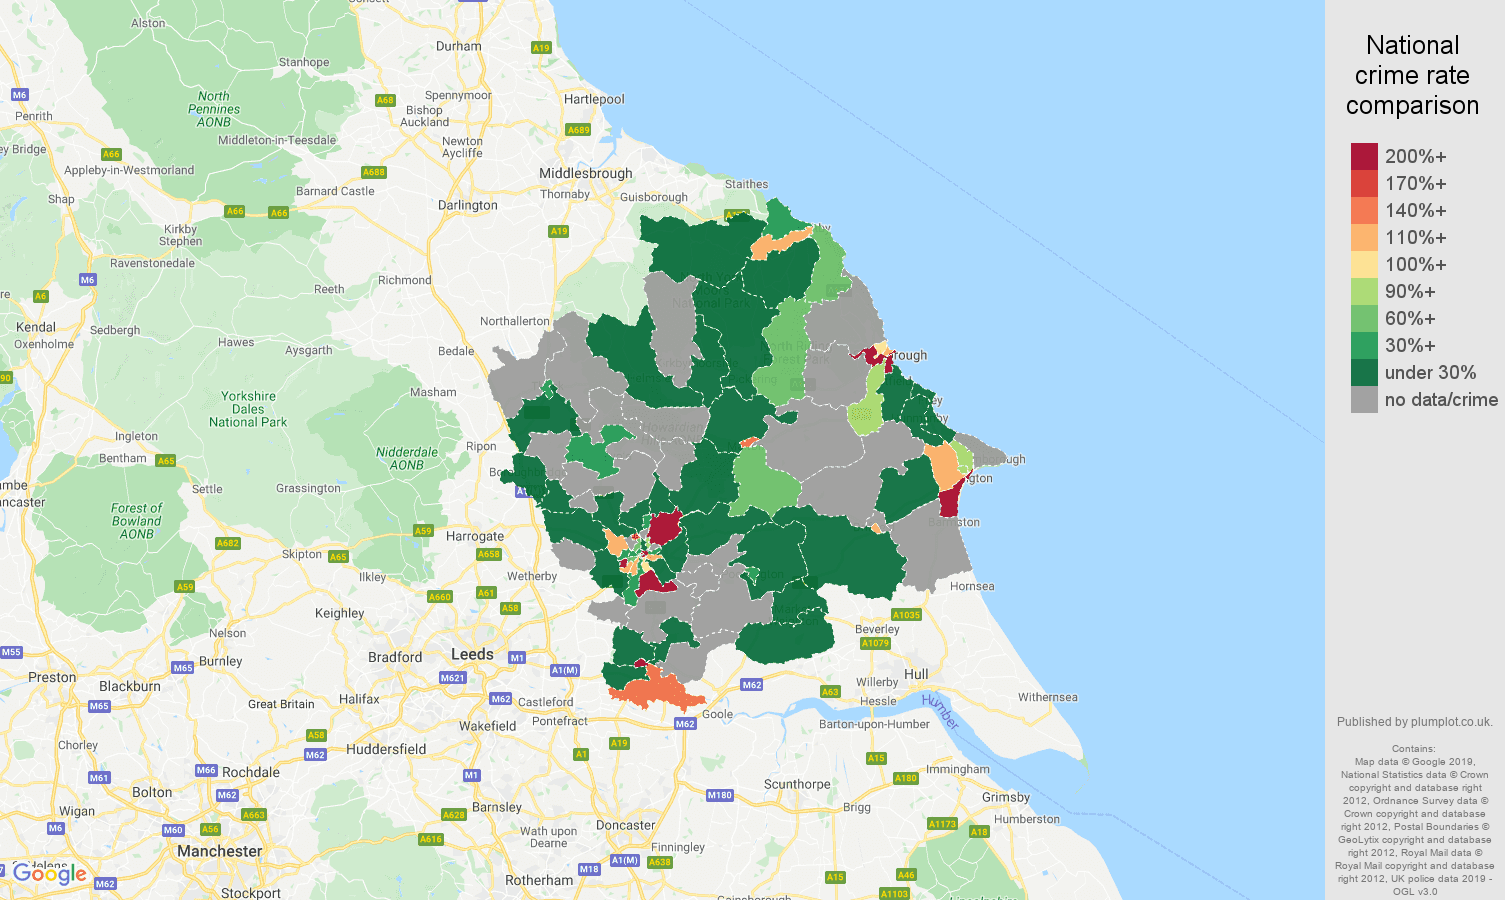 York shoplifting crime rate comparison map